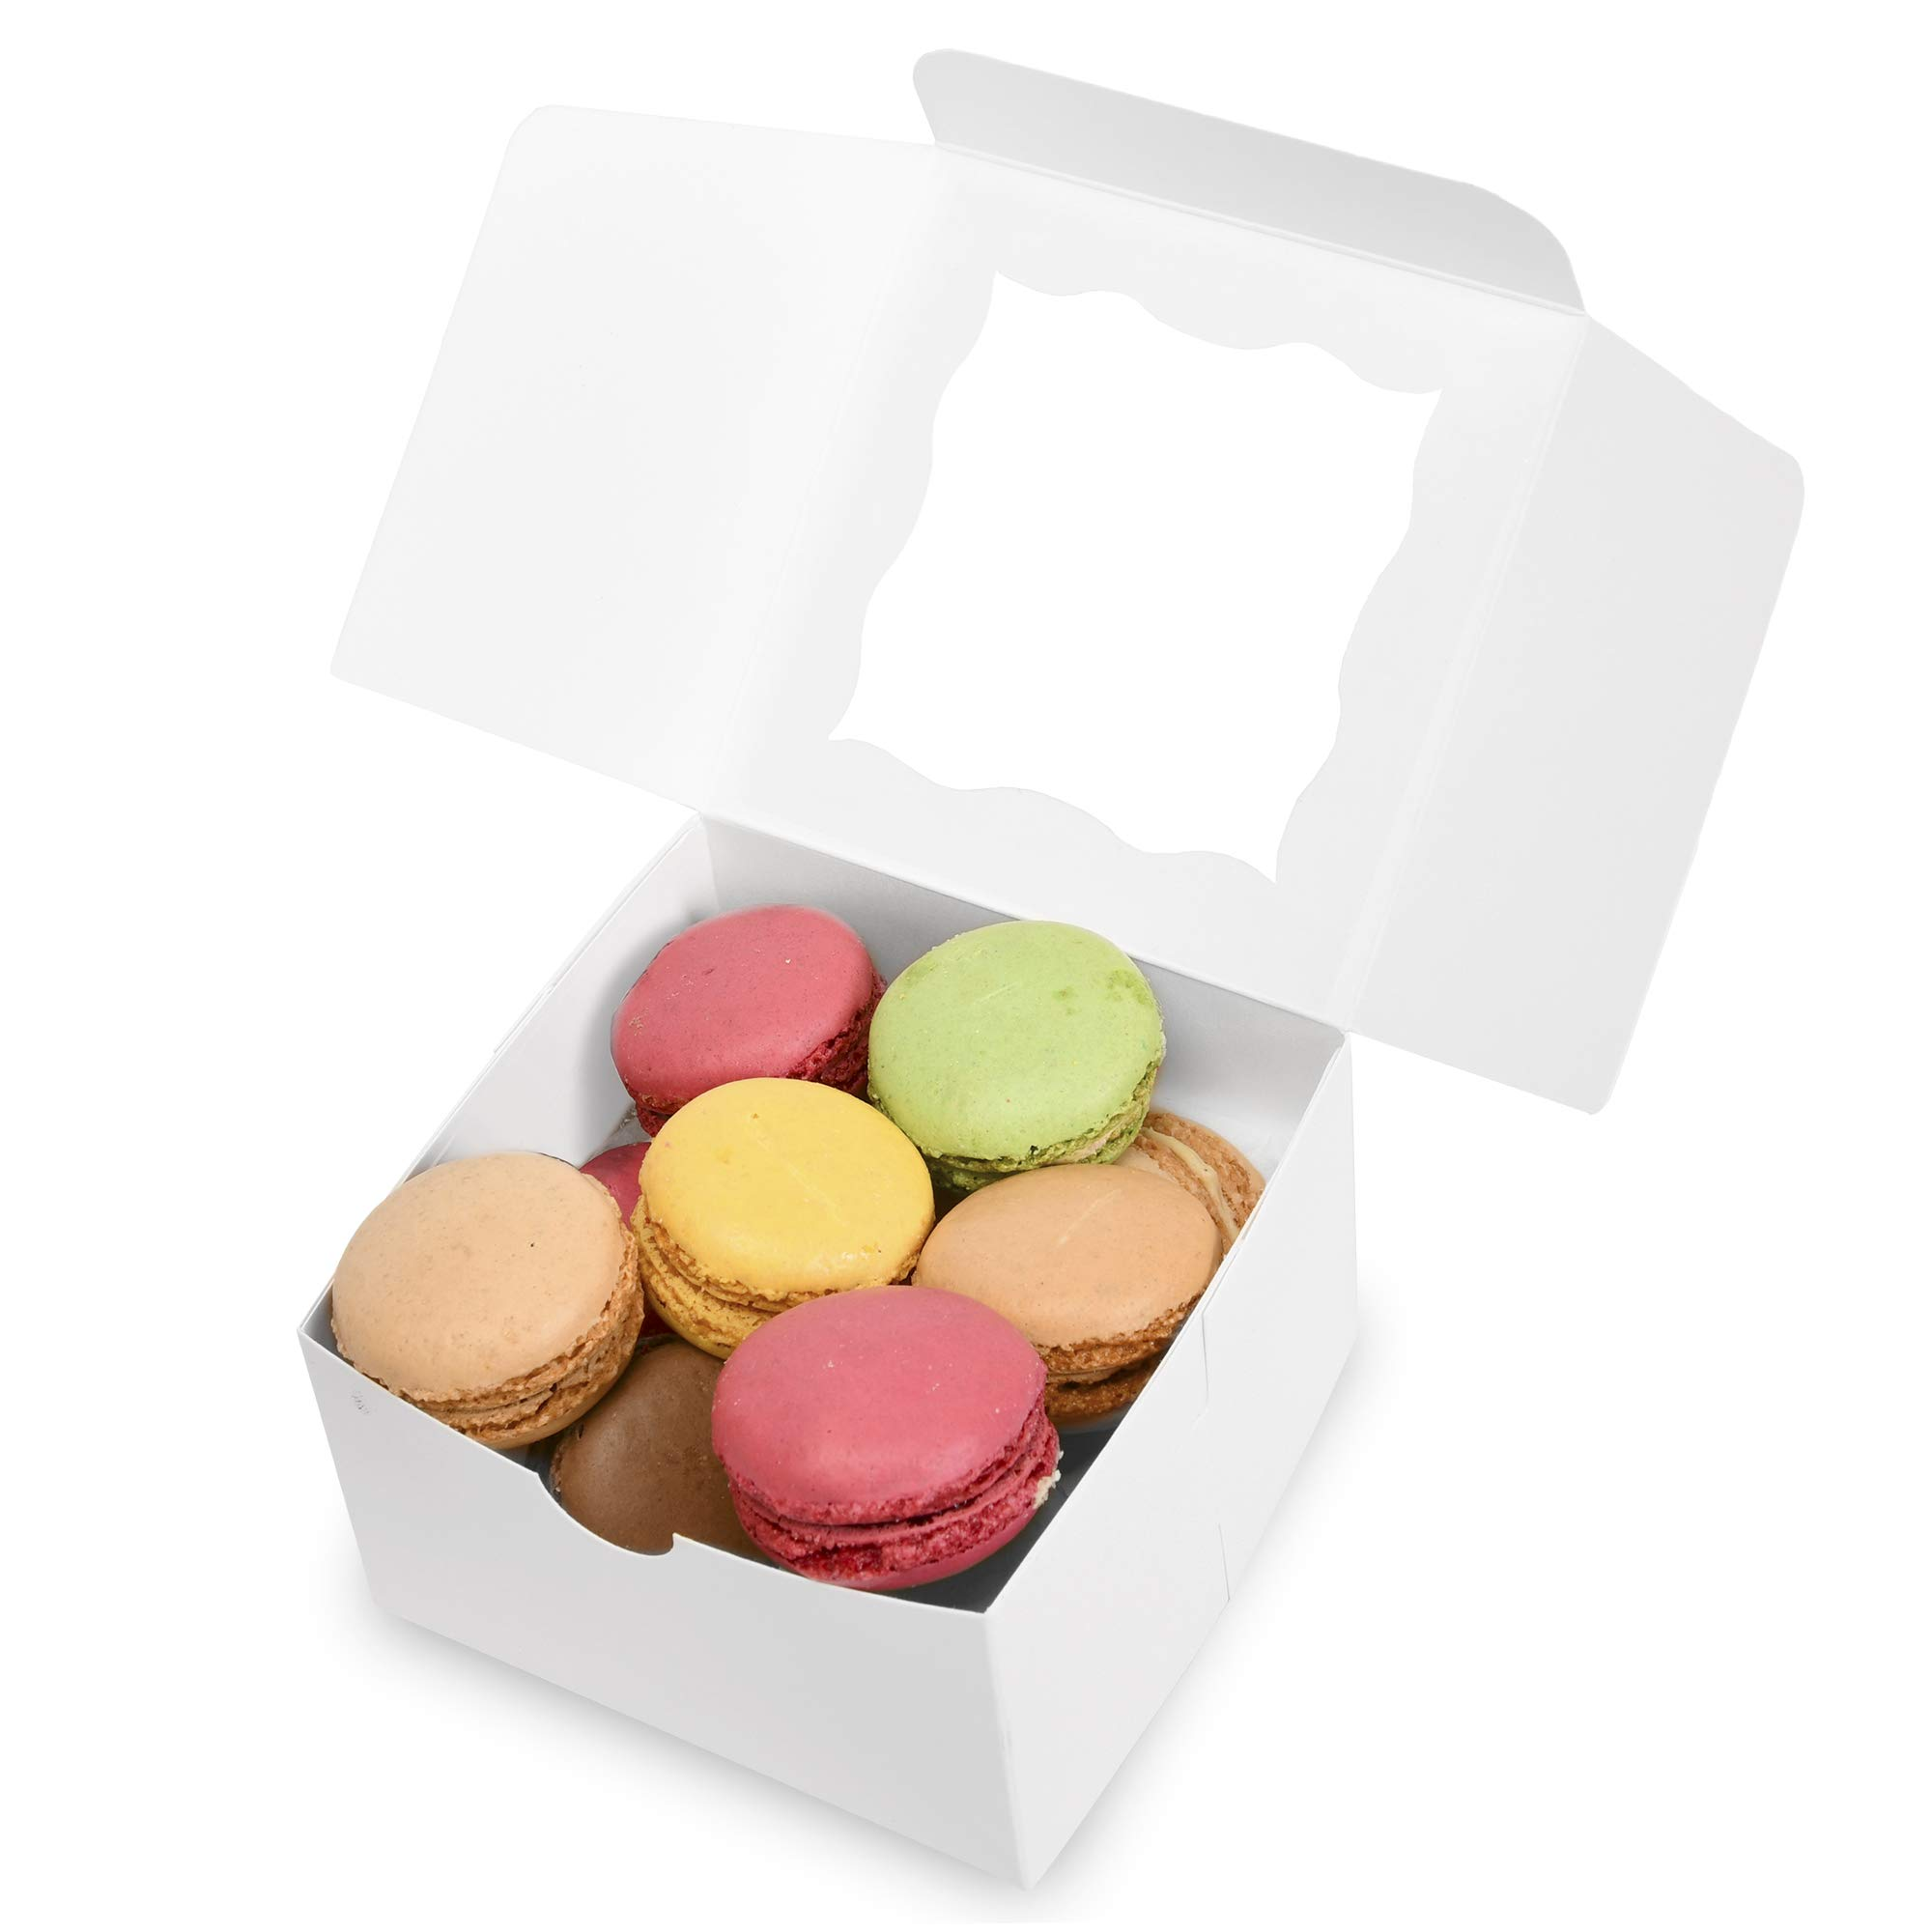 {Pack of 50} White Bakery Boxes with Window 4x4x2.5'' Cute Cardboard Gift Packaging Containers for Cookies, Cupcakes, Small Desserts, Pastry, Wedding Cake, Baby Showers, Donuts, Treats, Party Favors! by Surf City Supplies (Image #3)